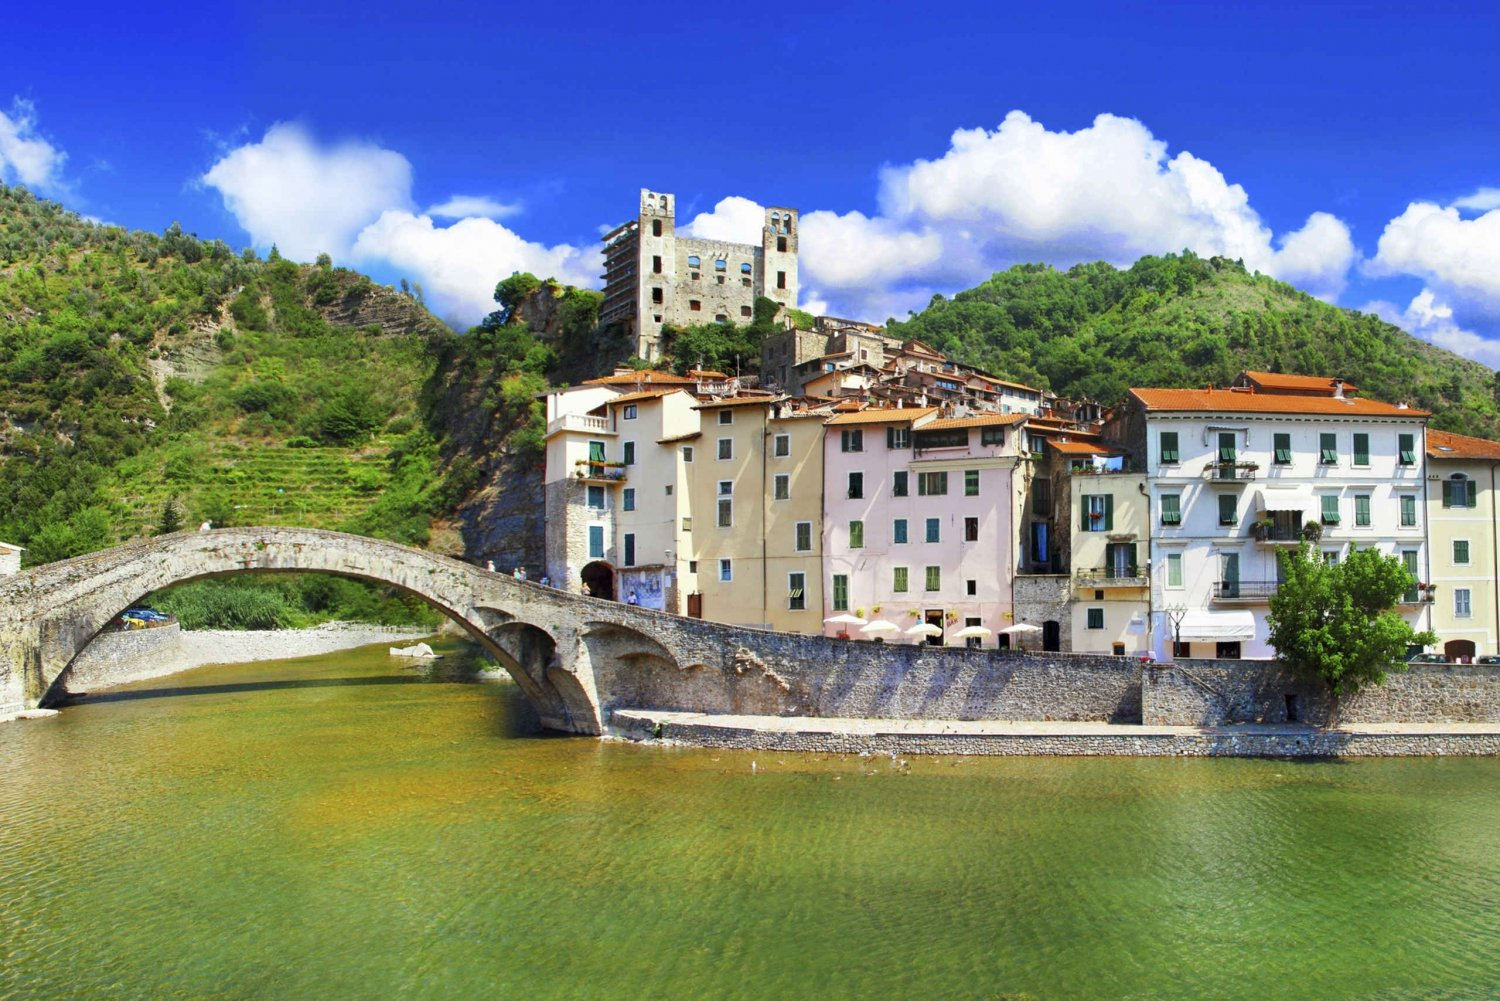 The Italian Riviera: Full-Day Tour from Cannes